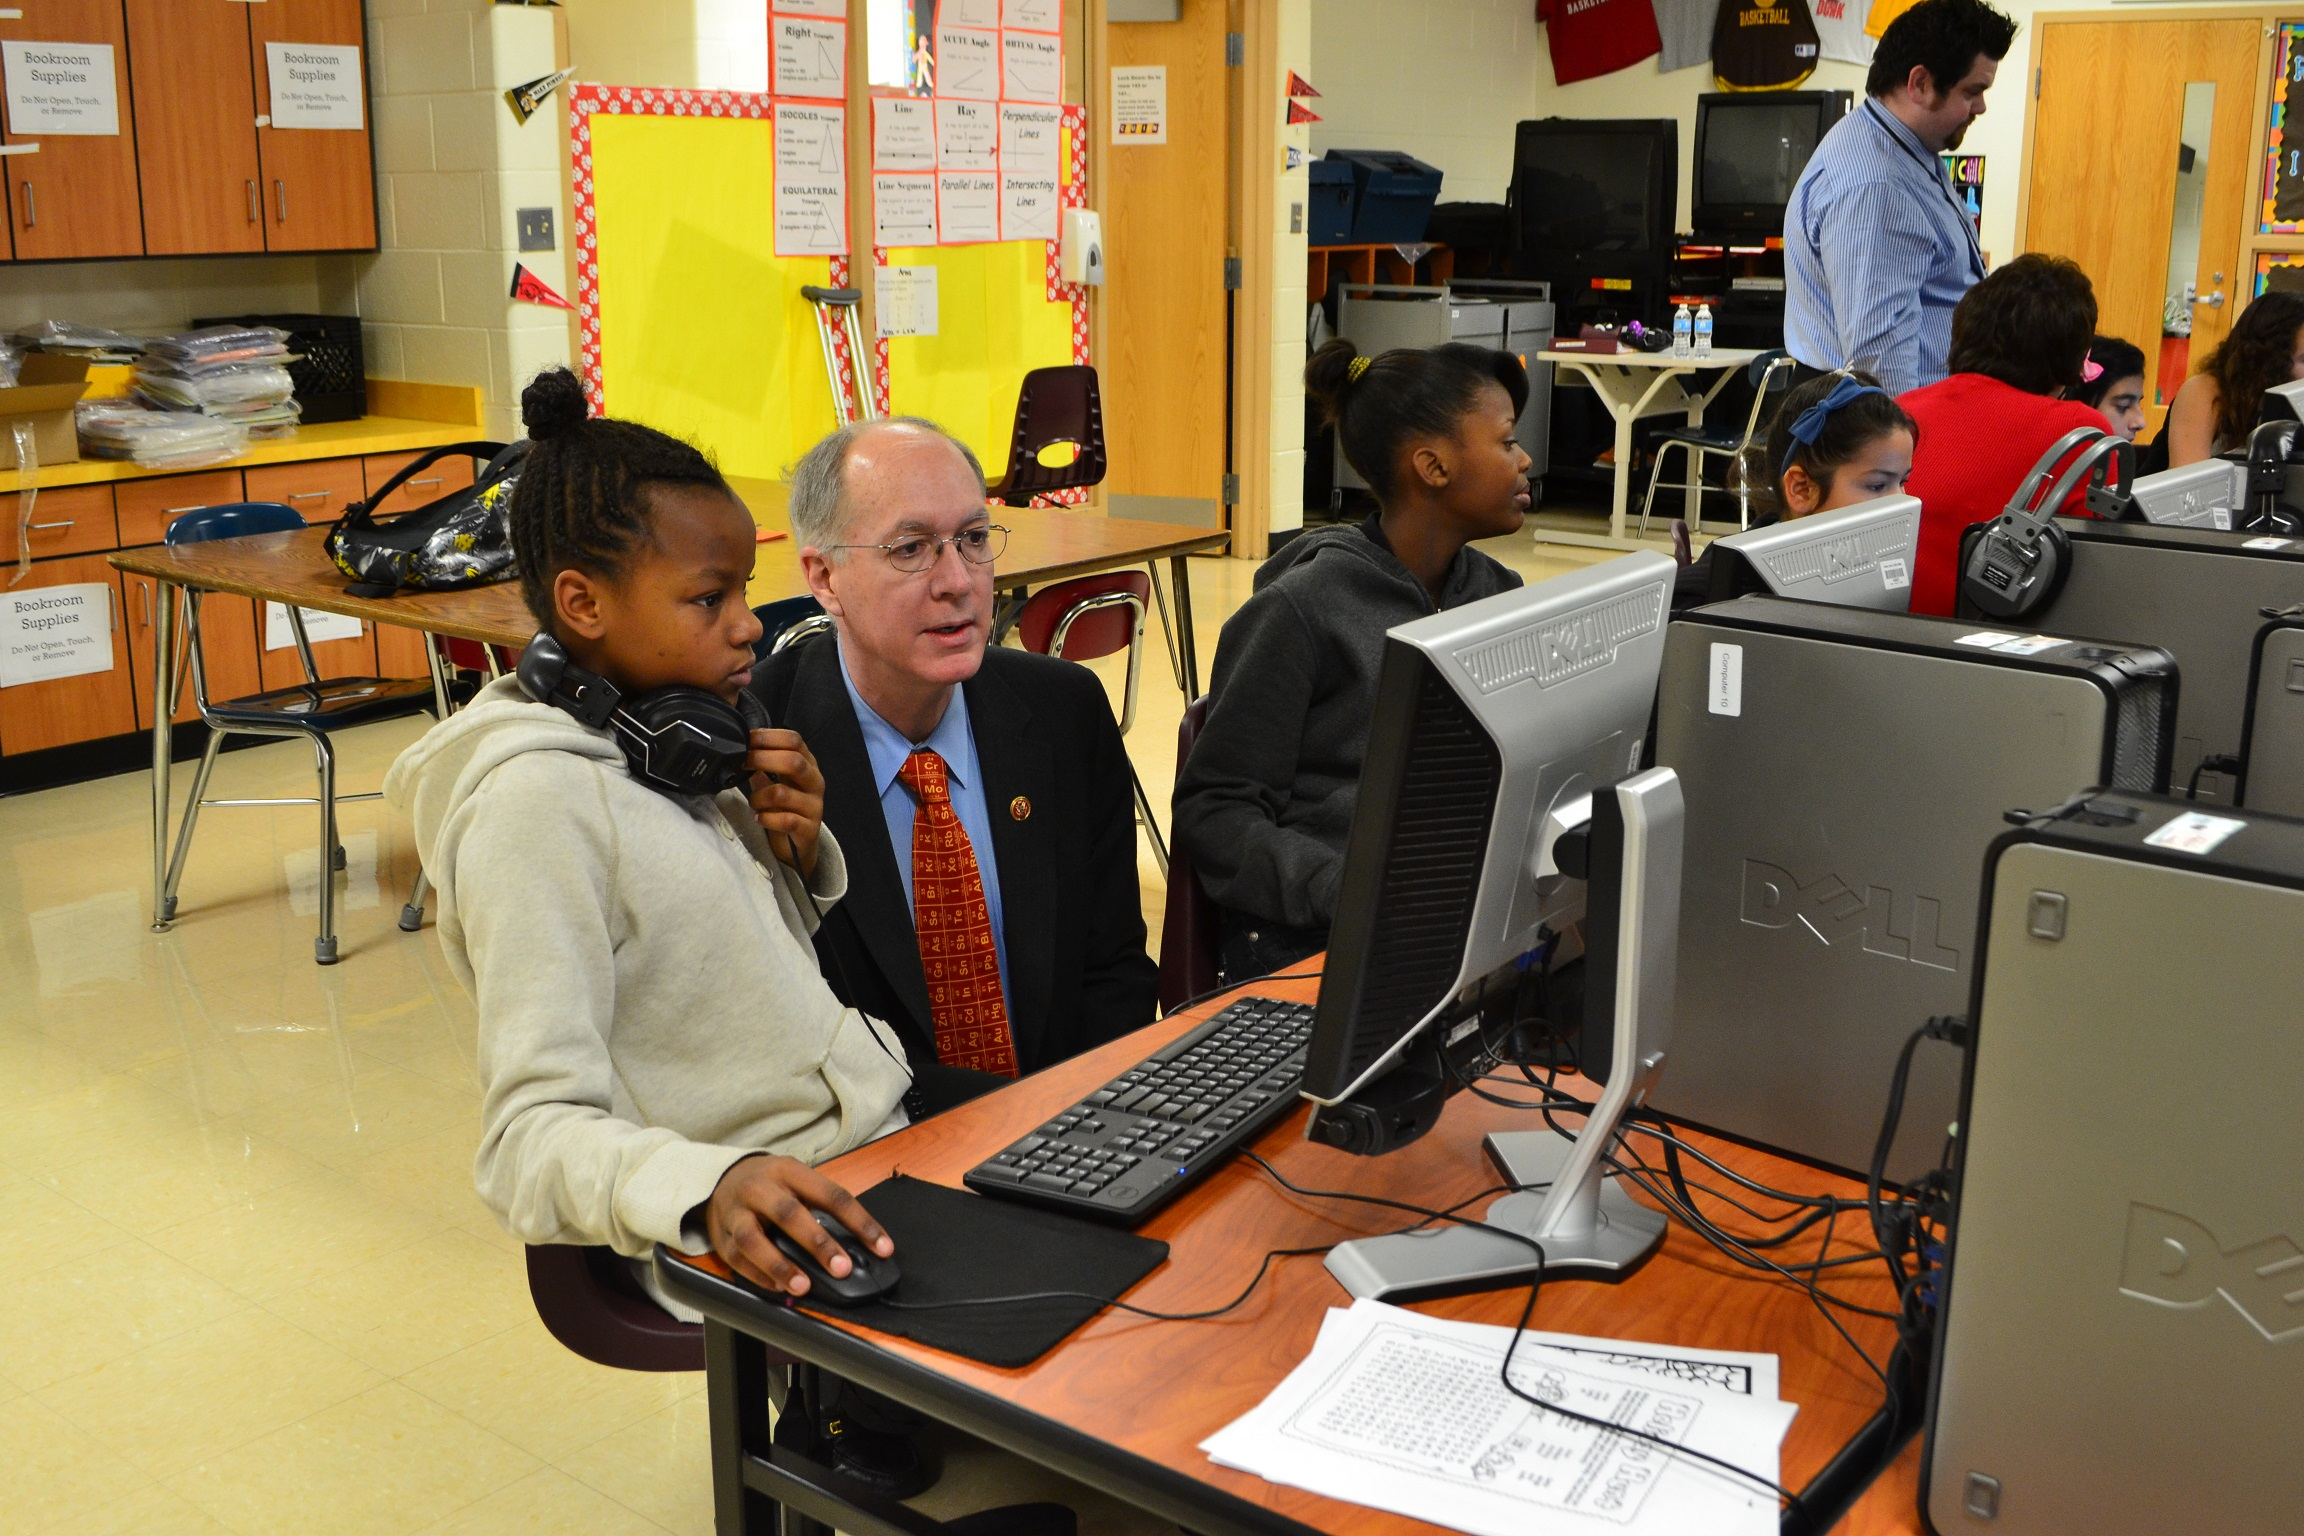 Congressman Bill Foster Participates In The Hour of Code